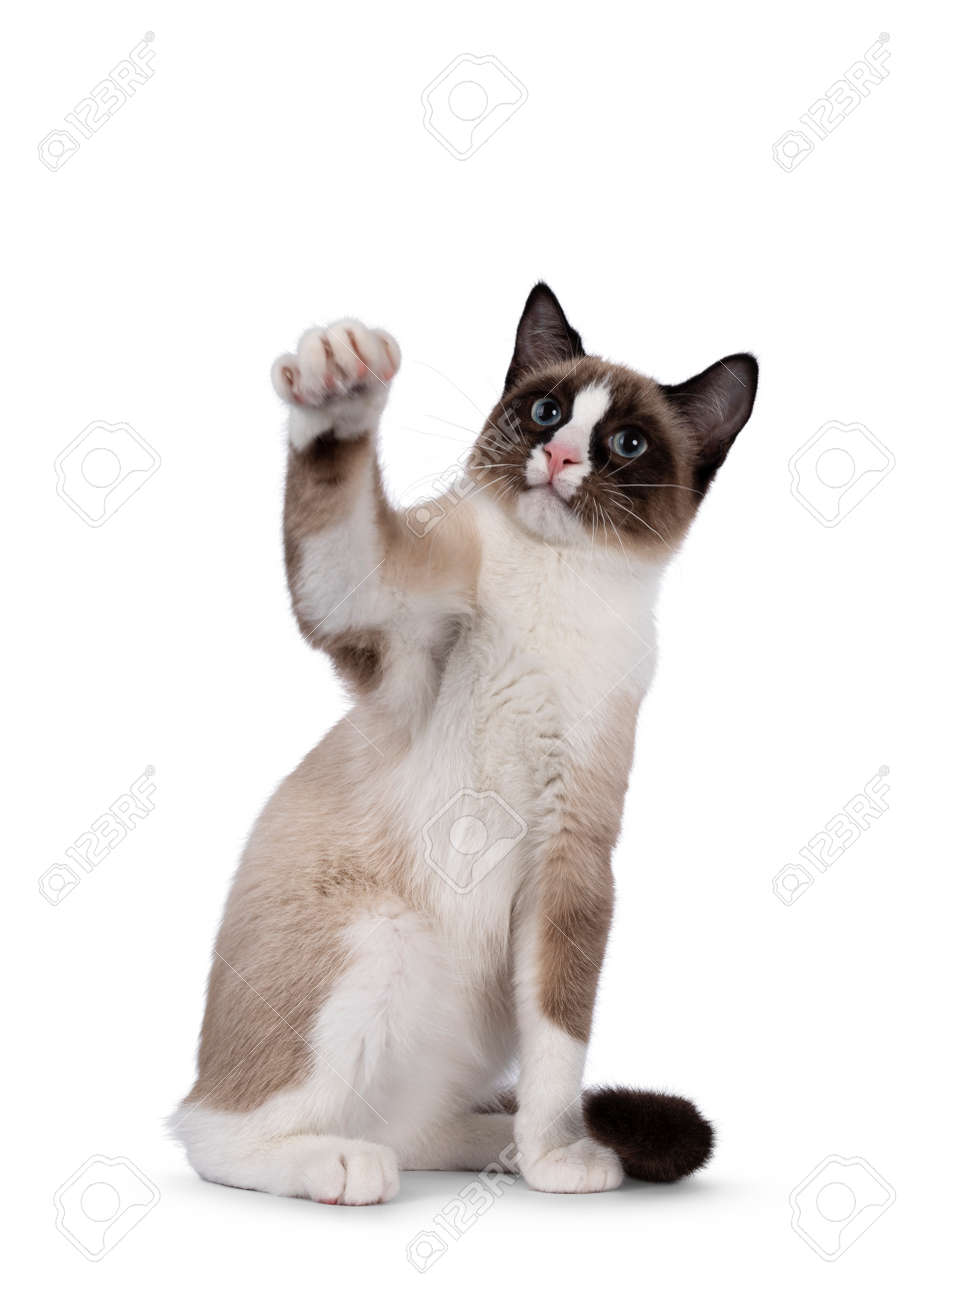 Adorable young Snowshoe cat kitten, sitting up front view. Looking towards camera with the typical blue eyes. One paw playful high in air. Isolated on a white background. - 173357265